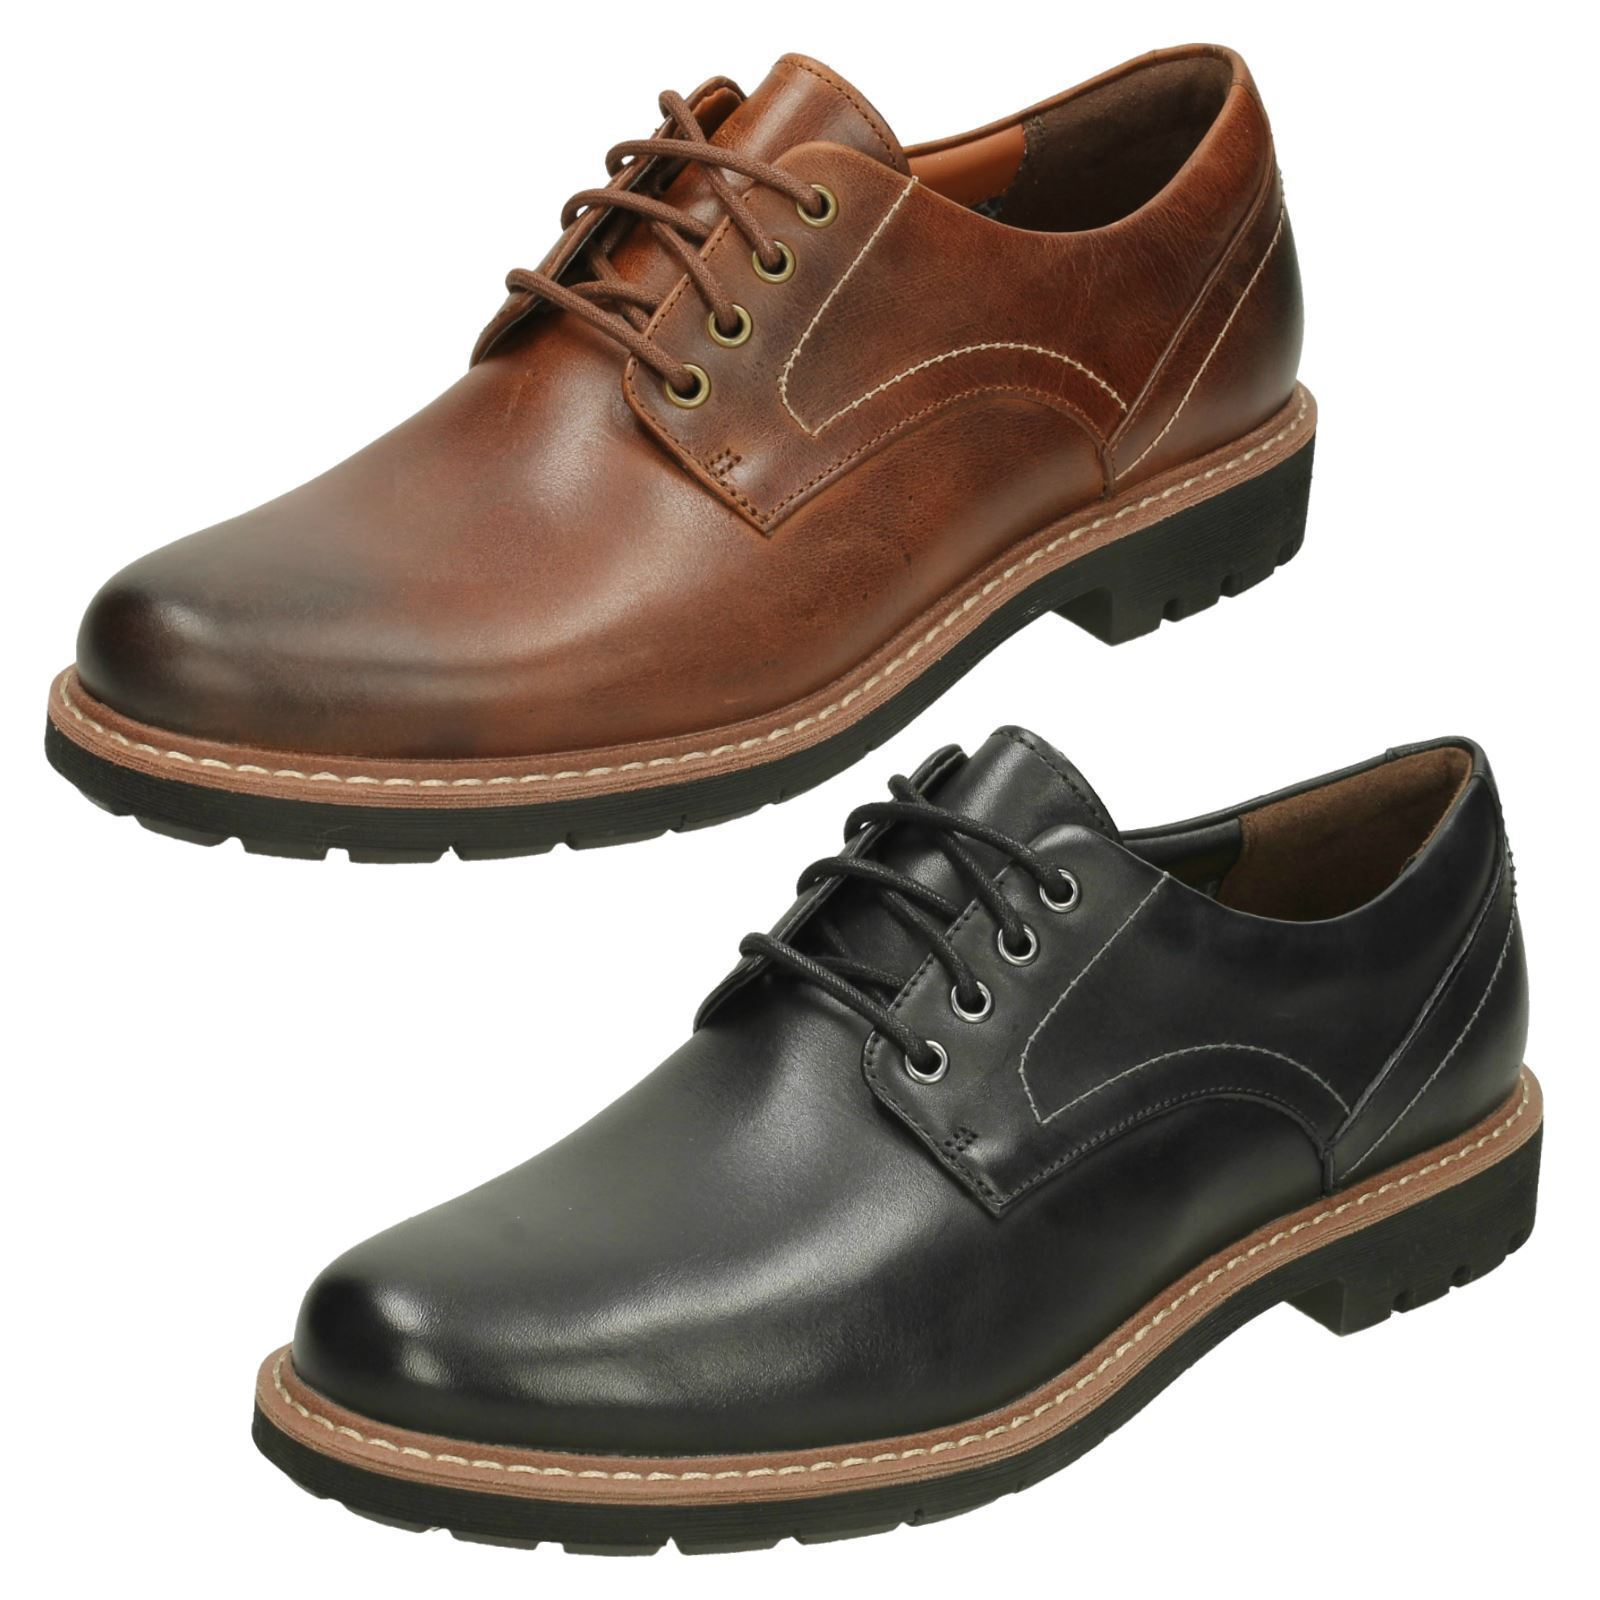 Mens Clarks Batcombe Hall Leather Smart Casual Lace Up shoes G Fitting